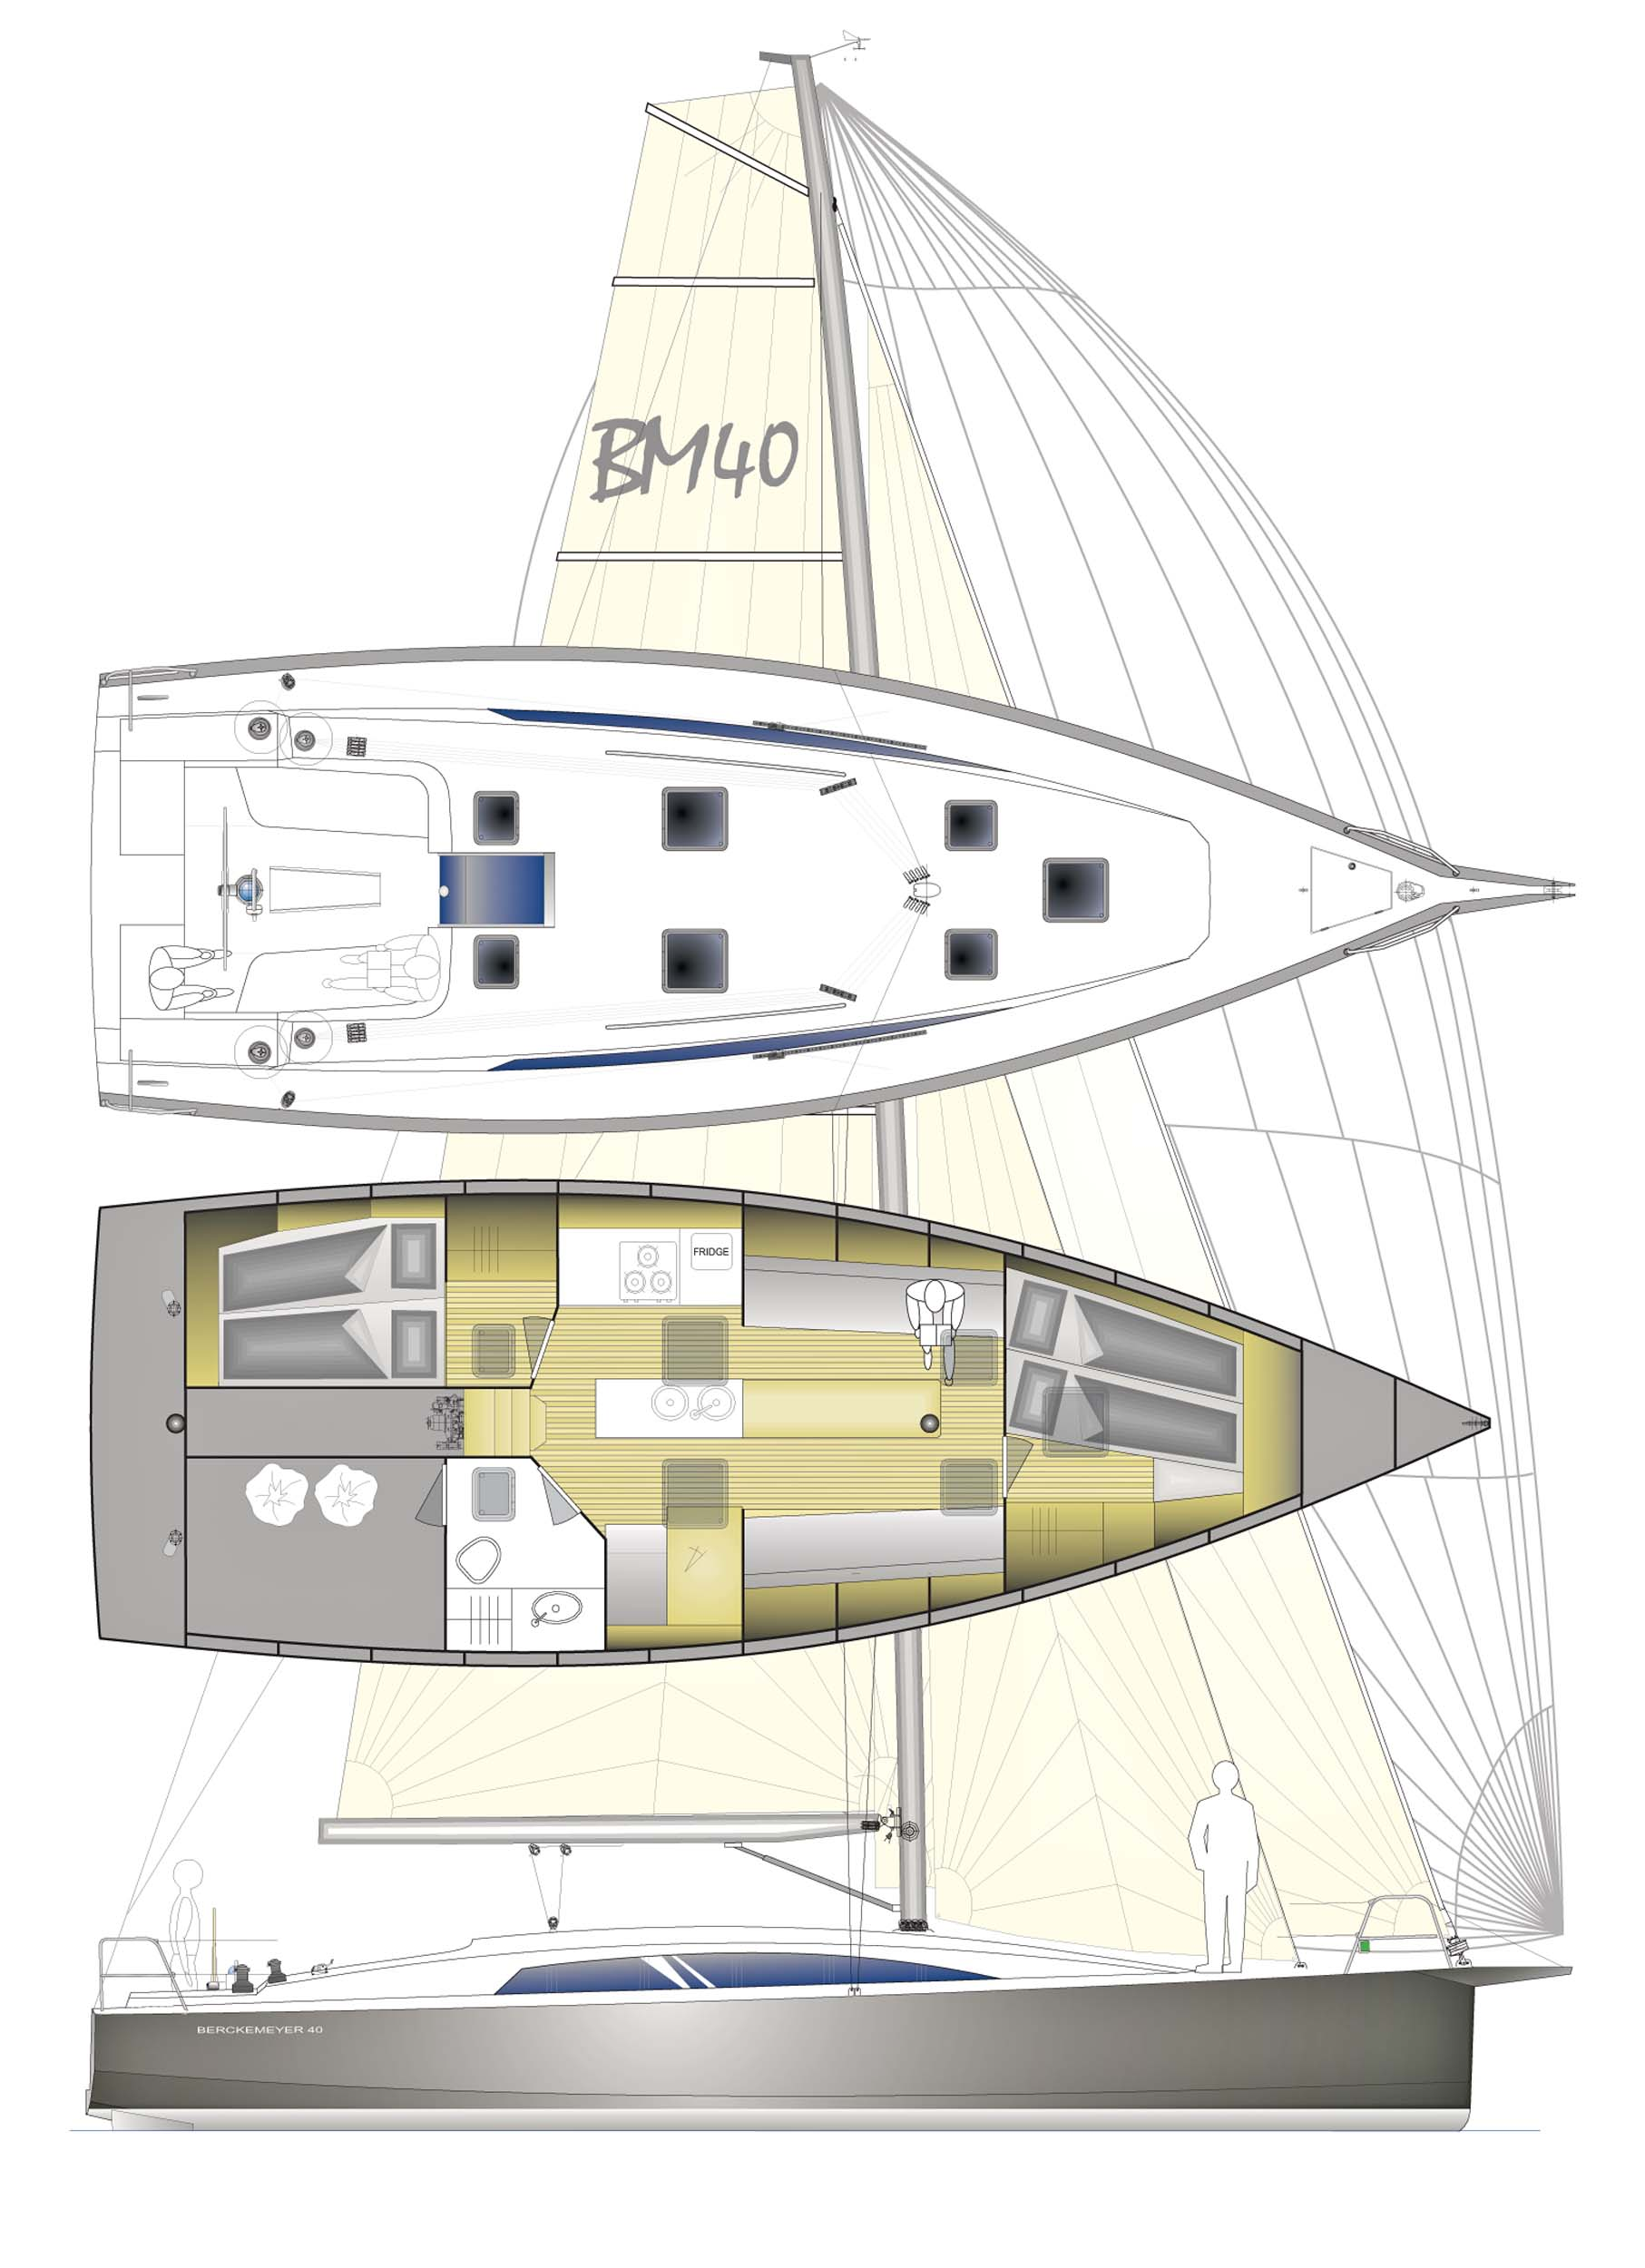 Berckemeyer yacht design plans for modern and classic sailing yachts email pooptronica Choice Image